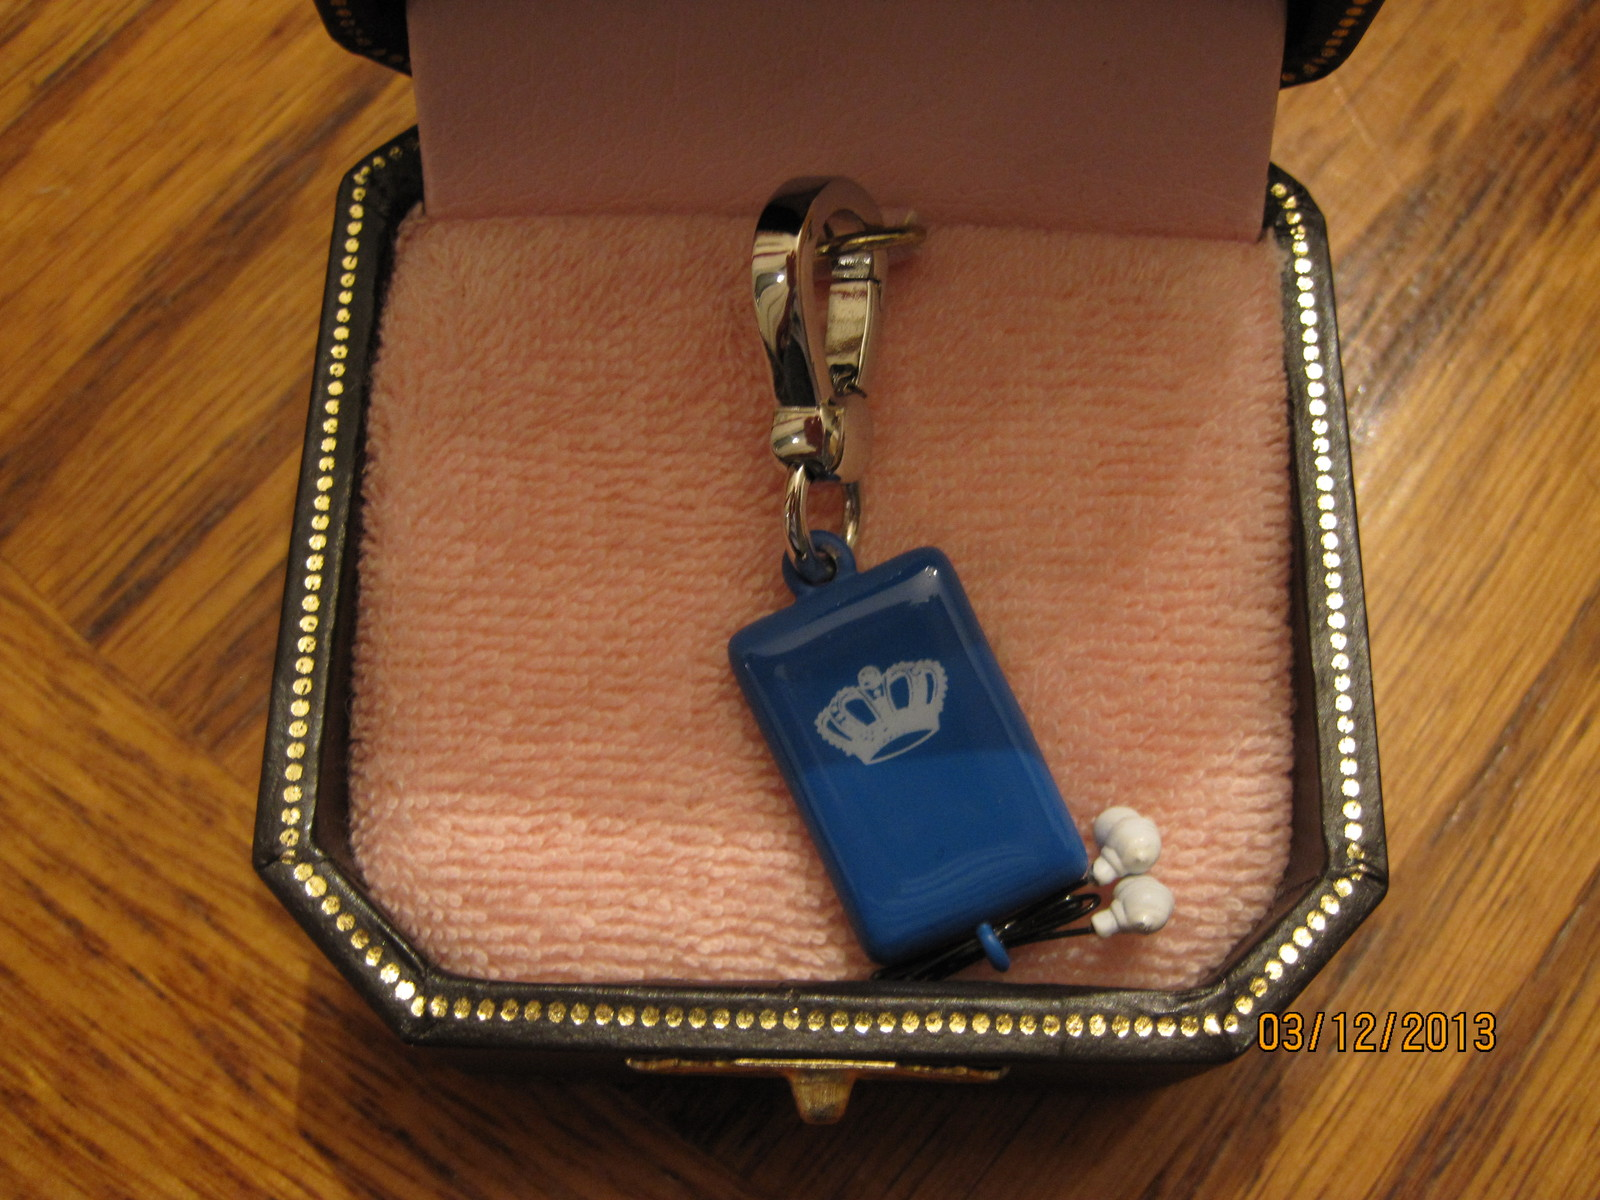 Juicy Couture mp3 player charm - cute!